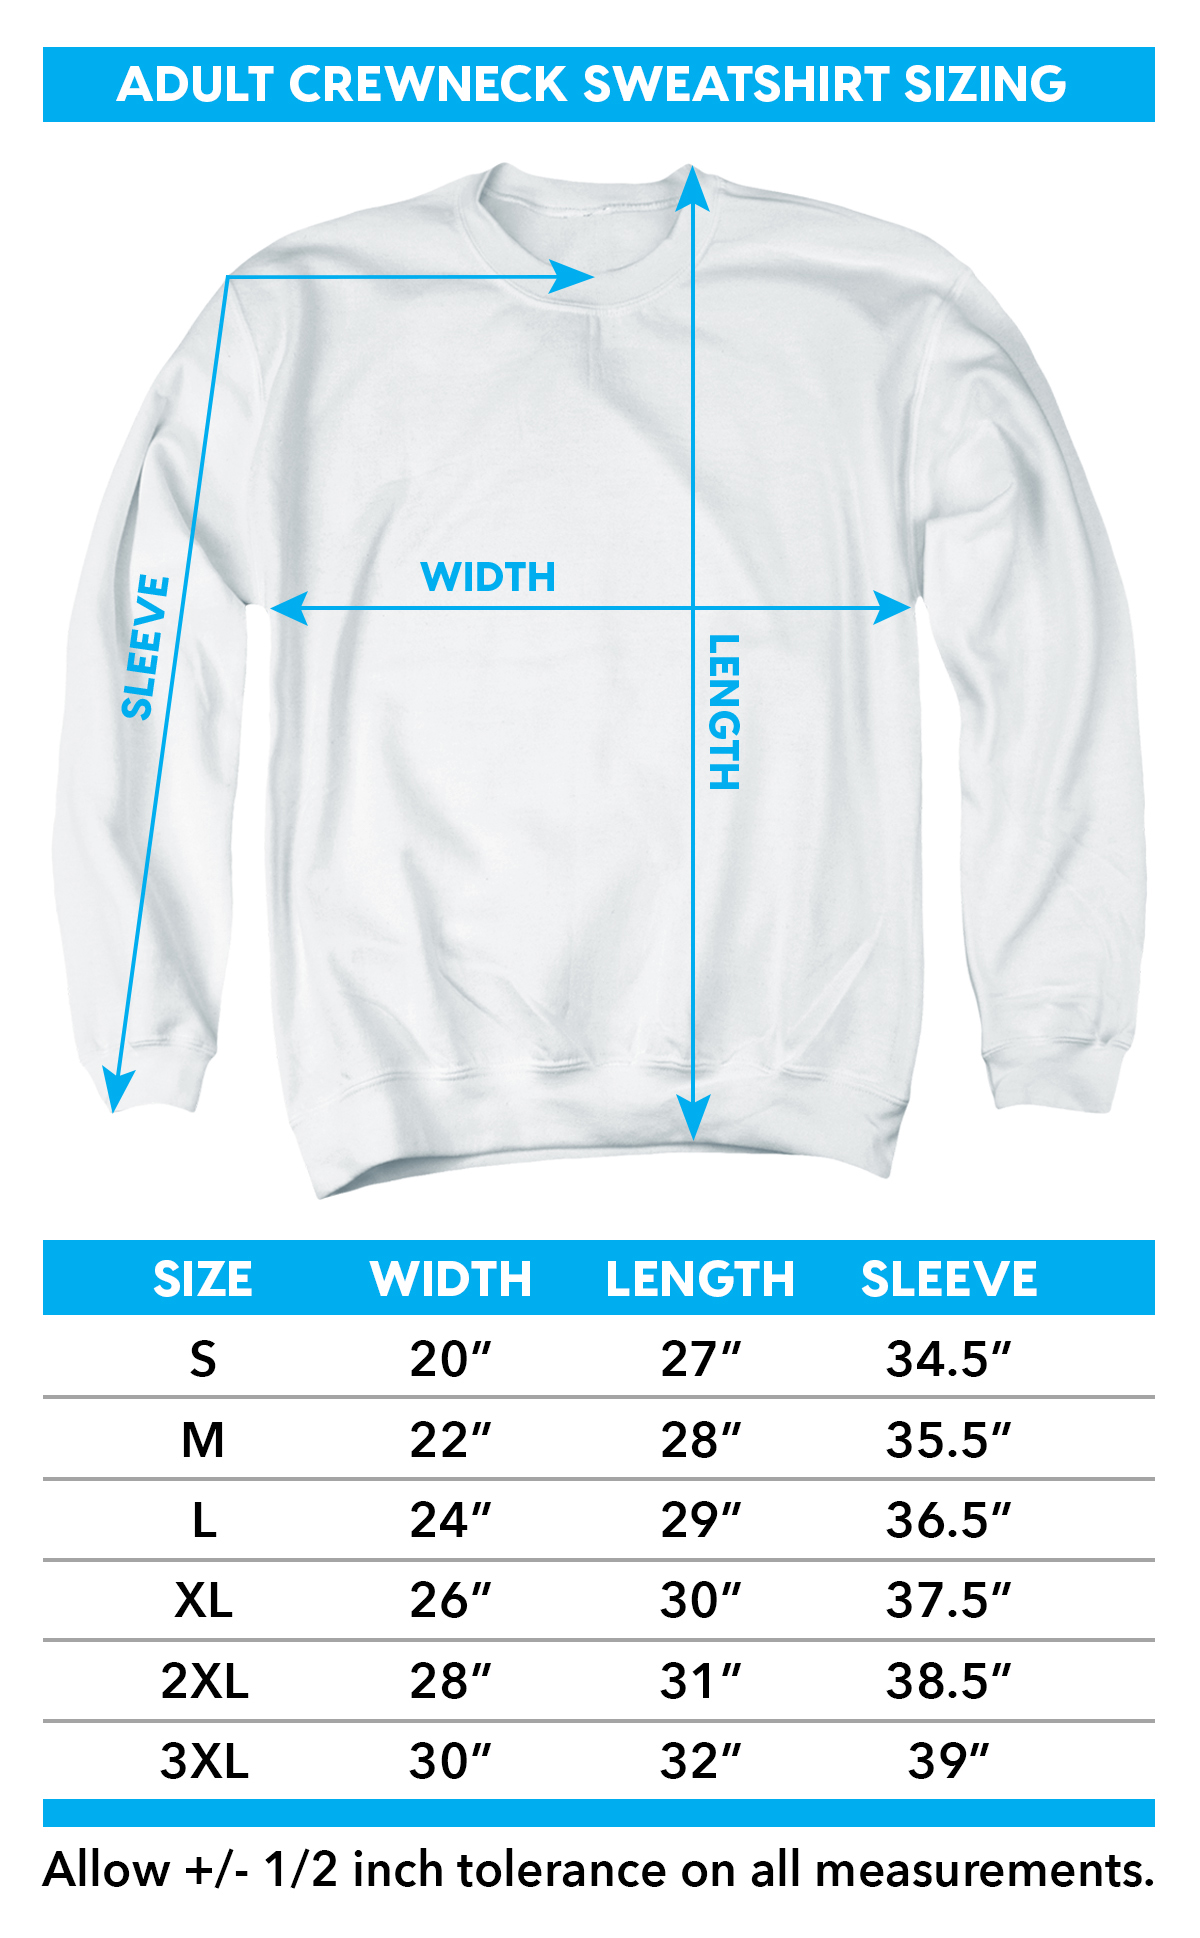 Sizing chart for the Astro Boy Who Needs Parts crewneck sweatshirt